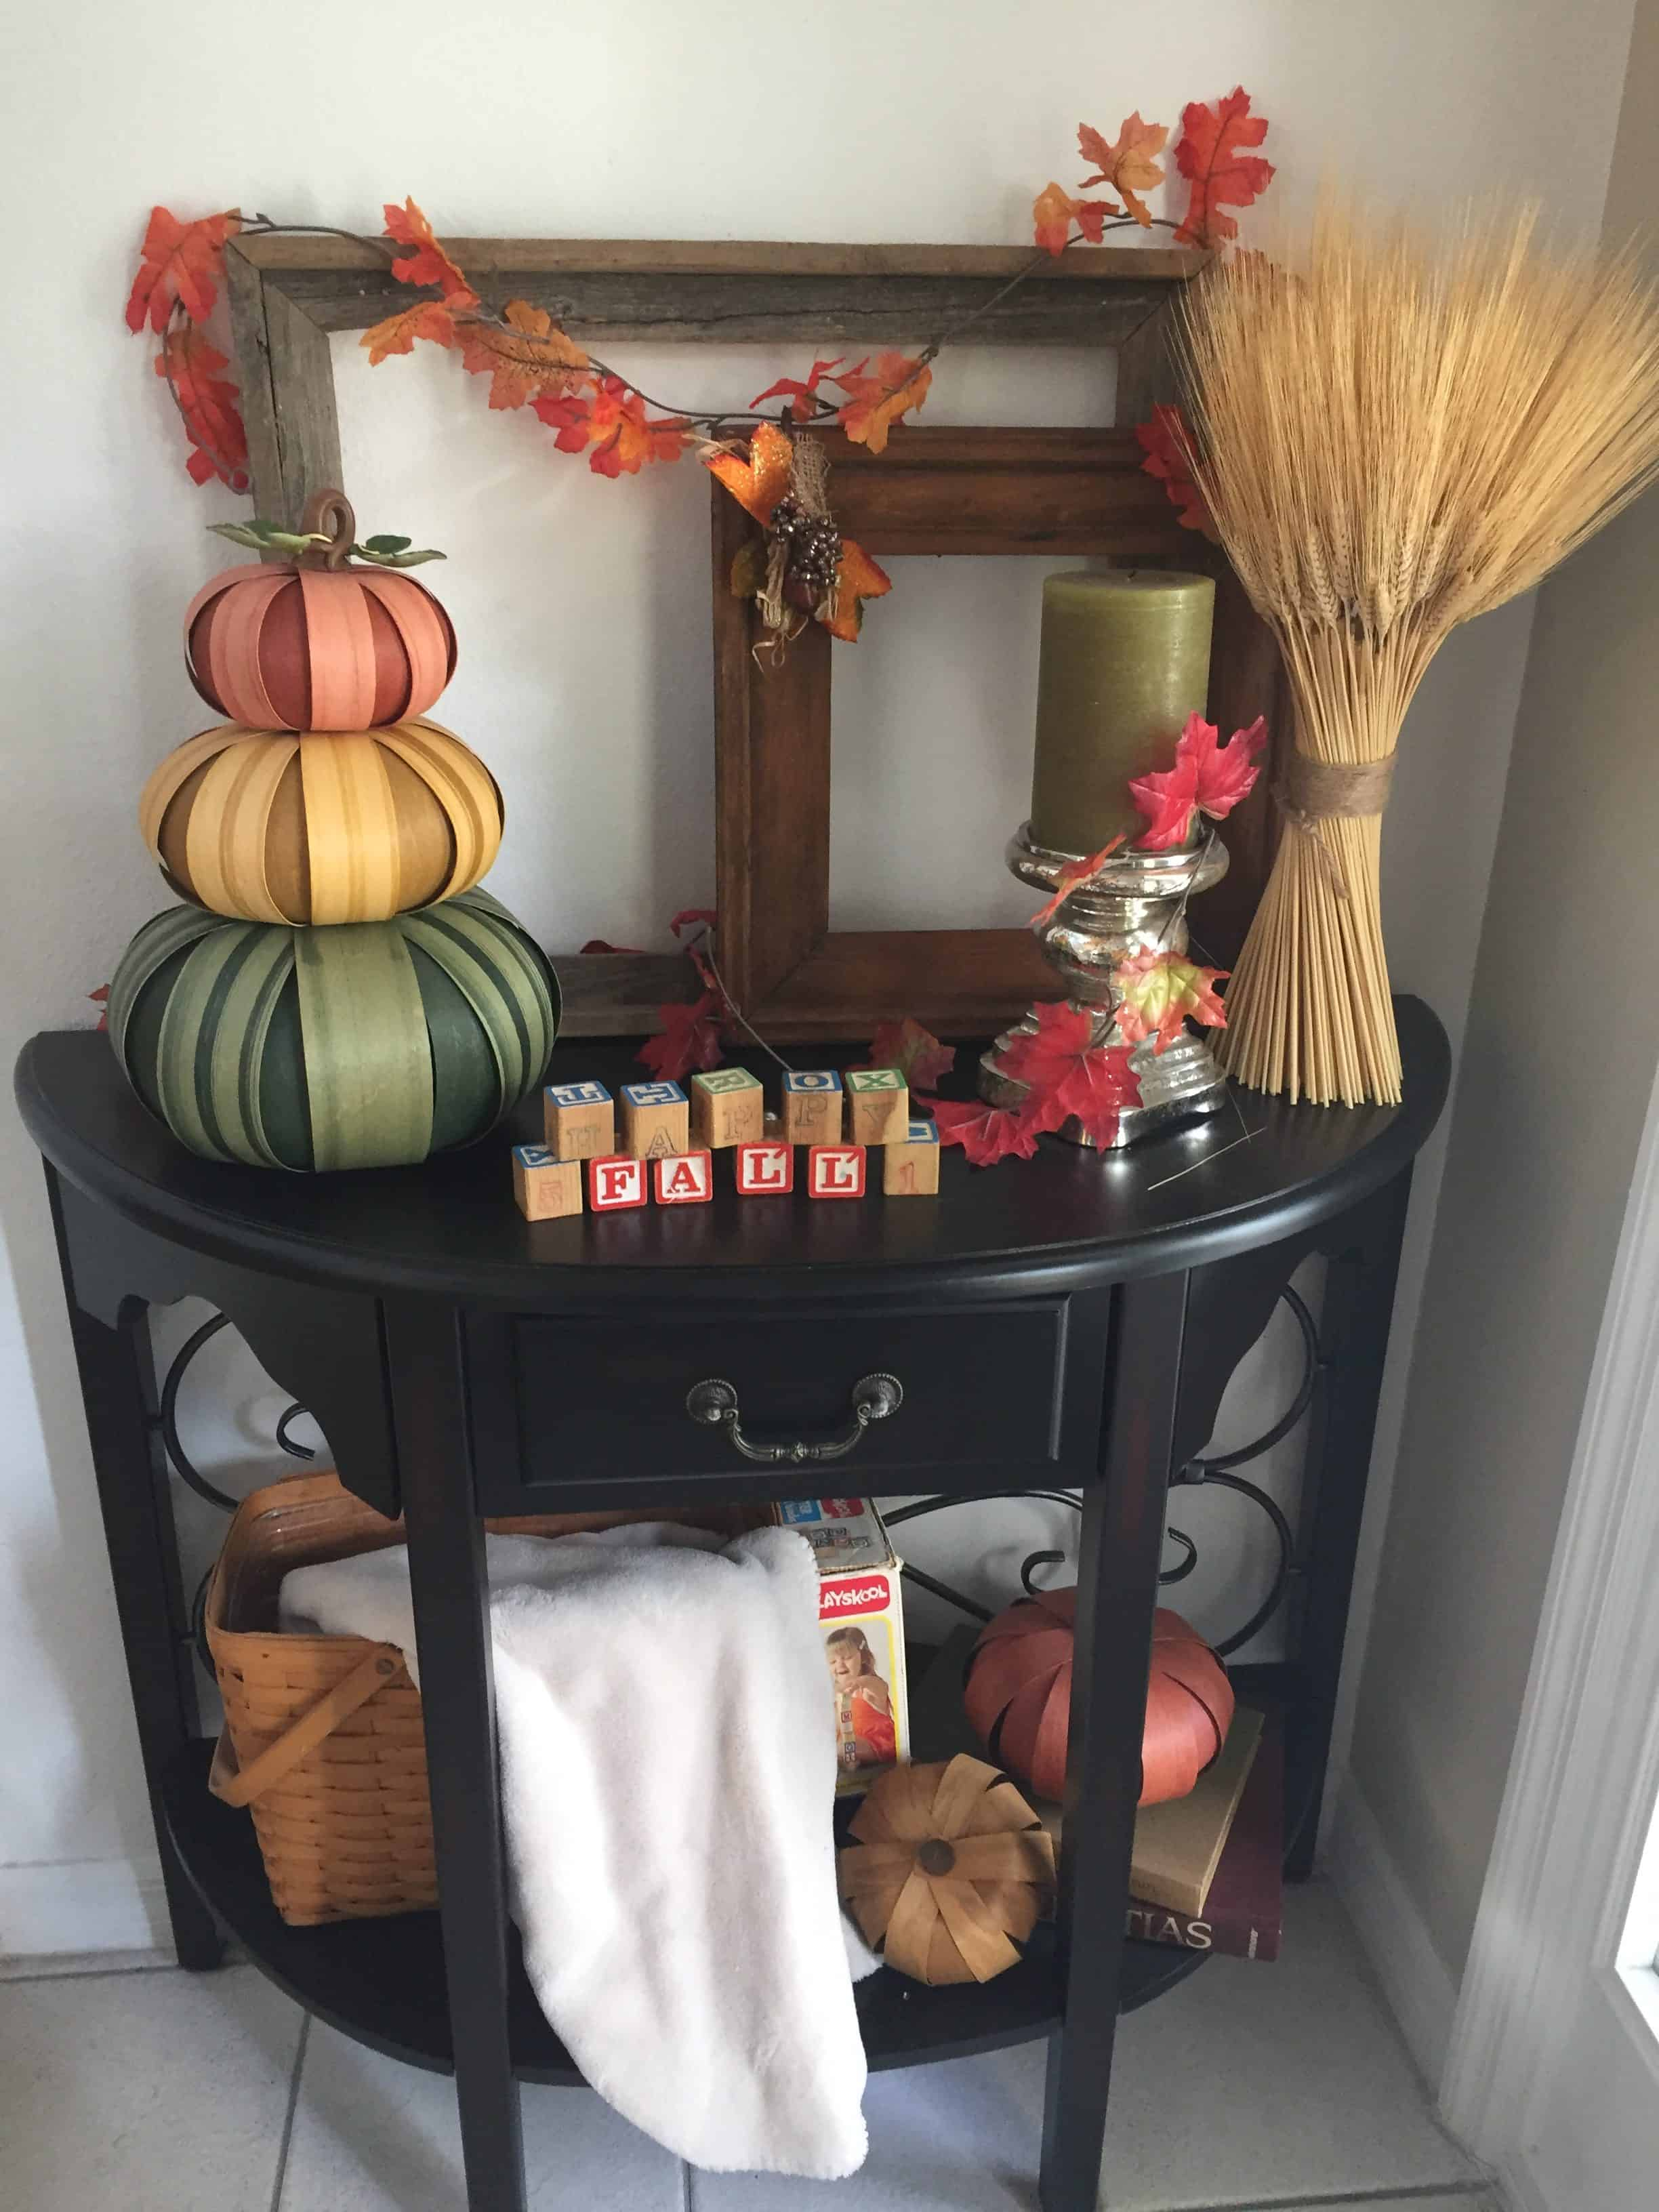 Fall Entry Table. Simplified Fall decorating that you can do even if your short on time and energy. From deciding where to decorate to how to curate a decorations collection without spending a fortune each year, I cover the entire process. I've even given you web resources to purchase similar products so you can do an exact copy if that's what you want. Read on to see how to maximize your results while minimizing your time, energy and money. #falldecorating #simplified #chronicillness